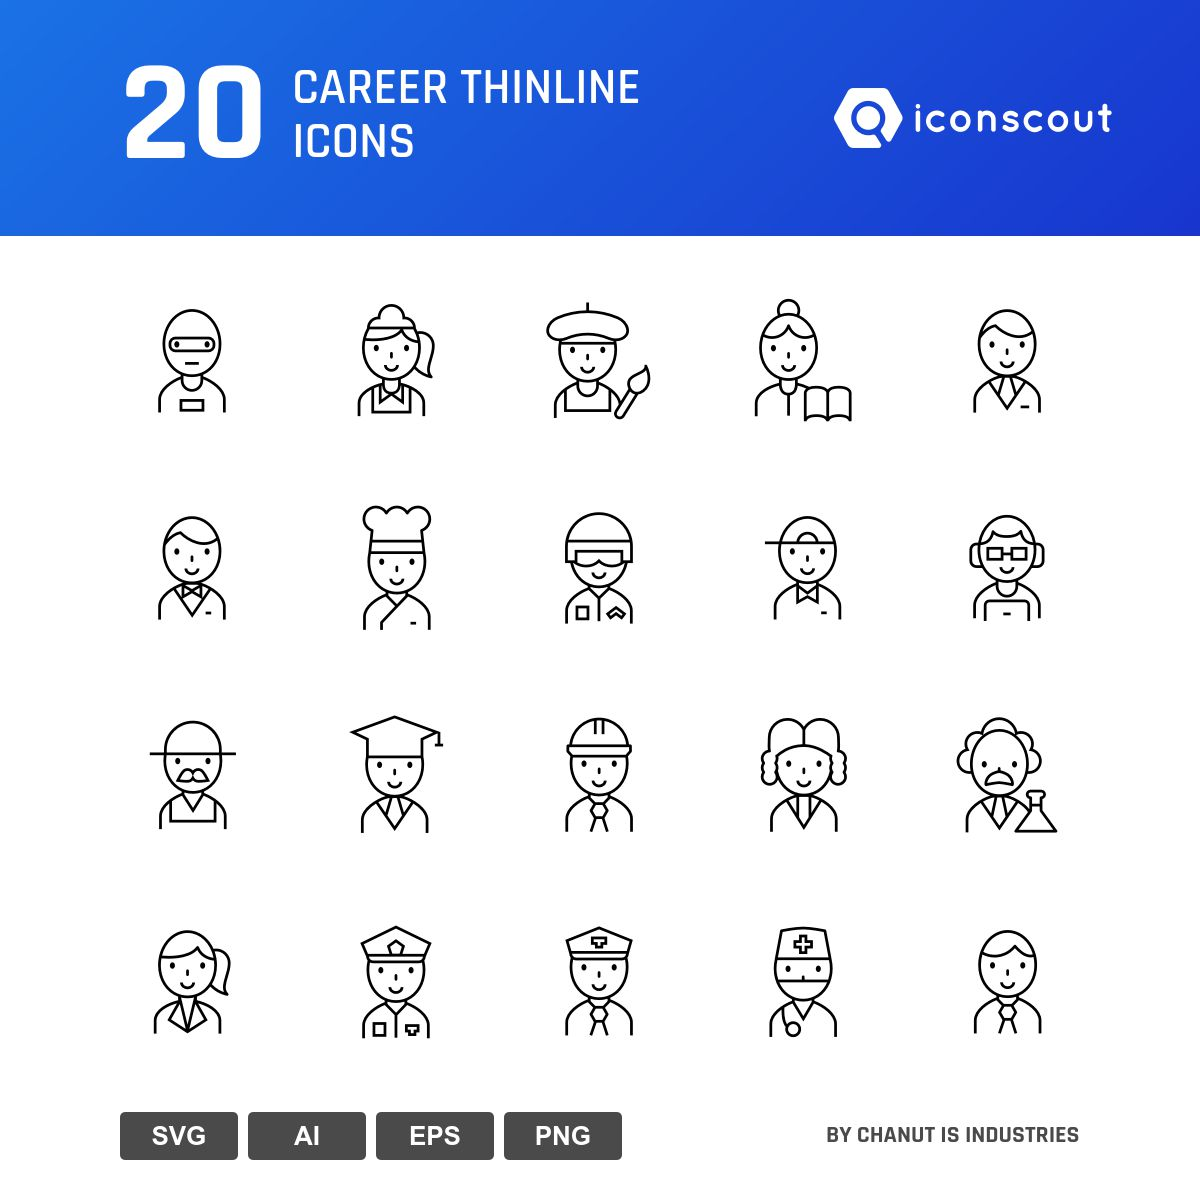 Career Thinline icons by Chanut Is Industries